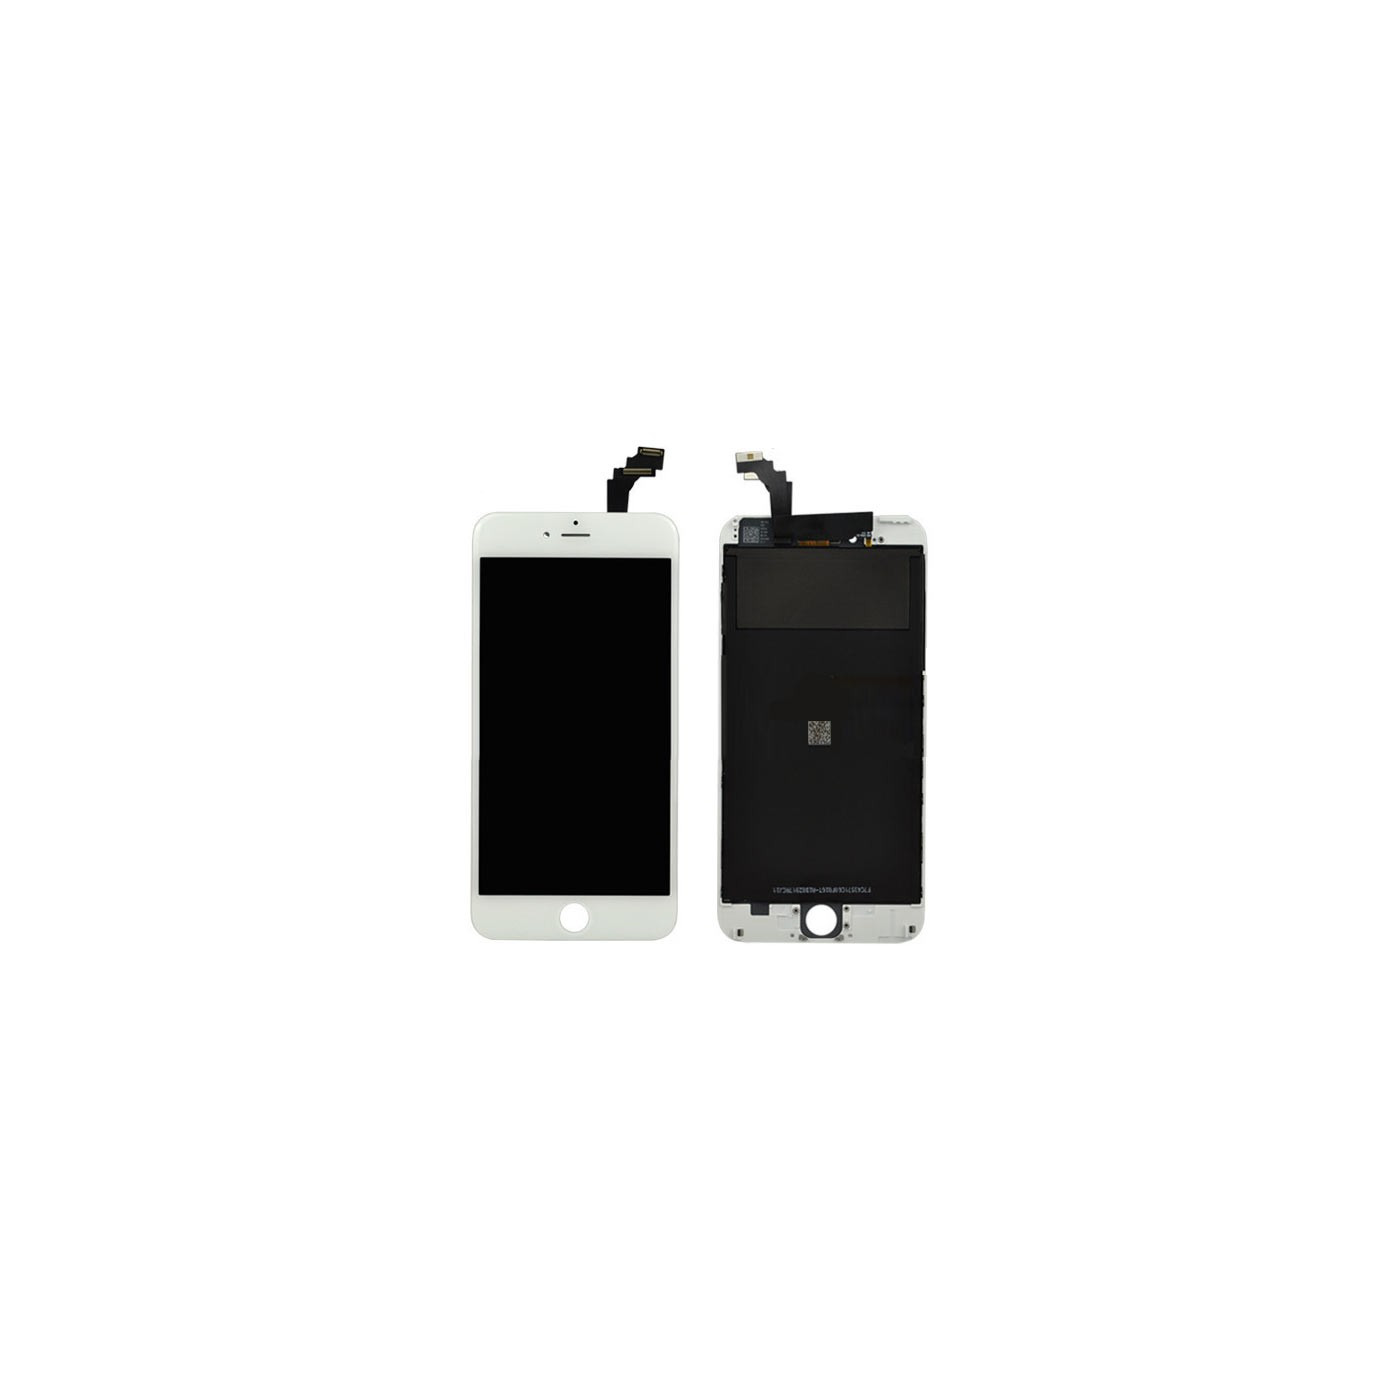 TOUCH GLASS LCD DISPLAY for Apple iPhone 6 PLUS WHITE TIANMA ORIGINAL SCREEN